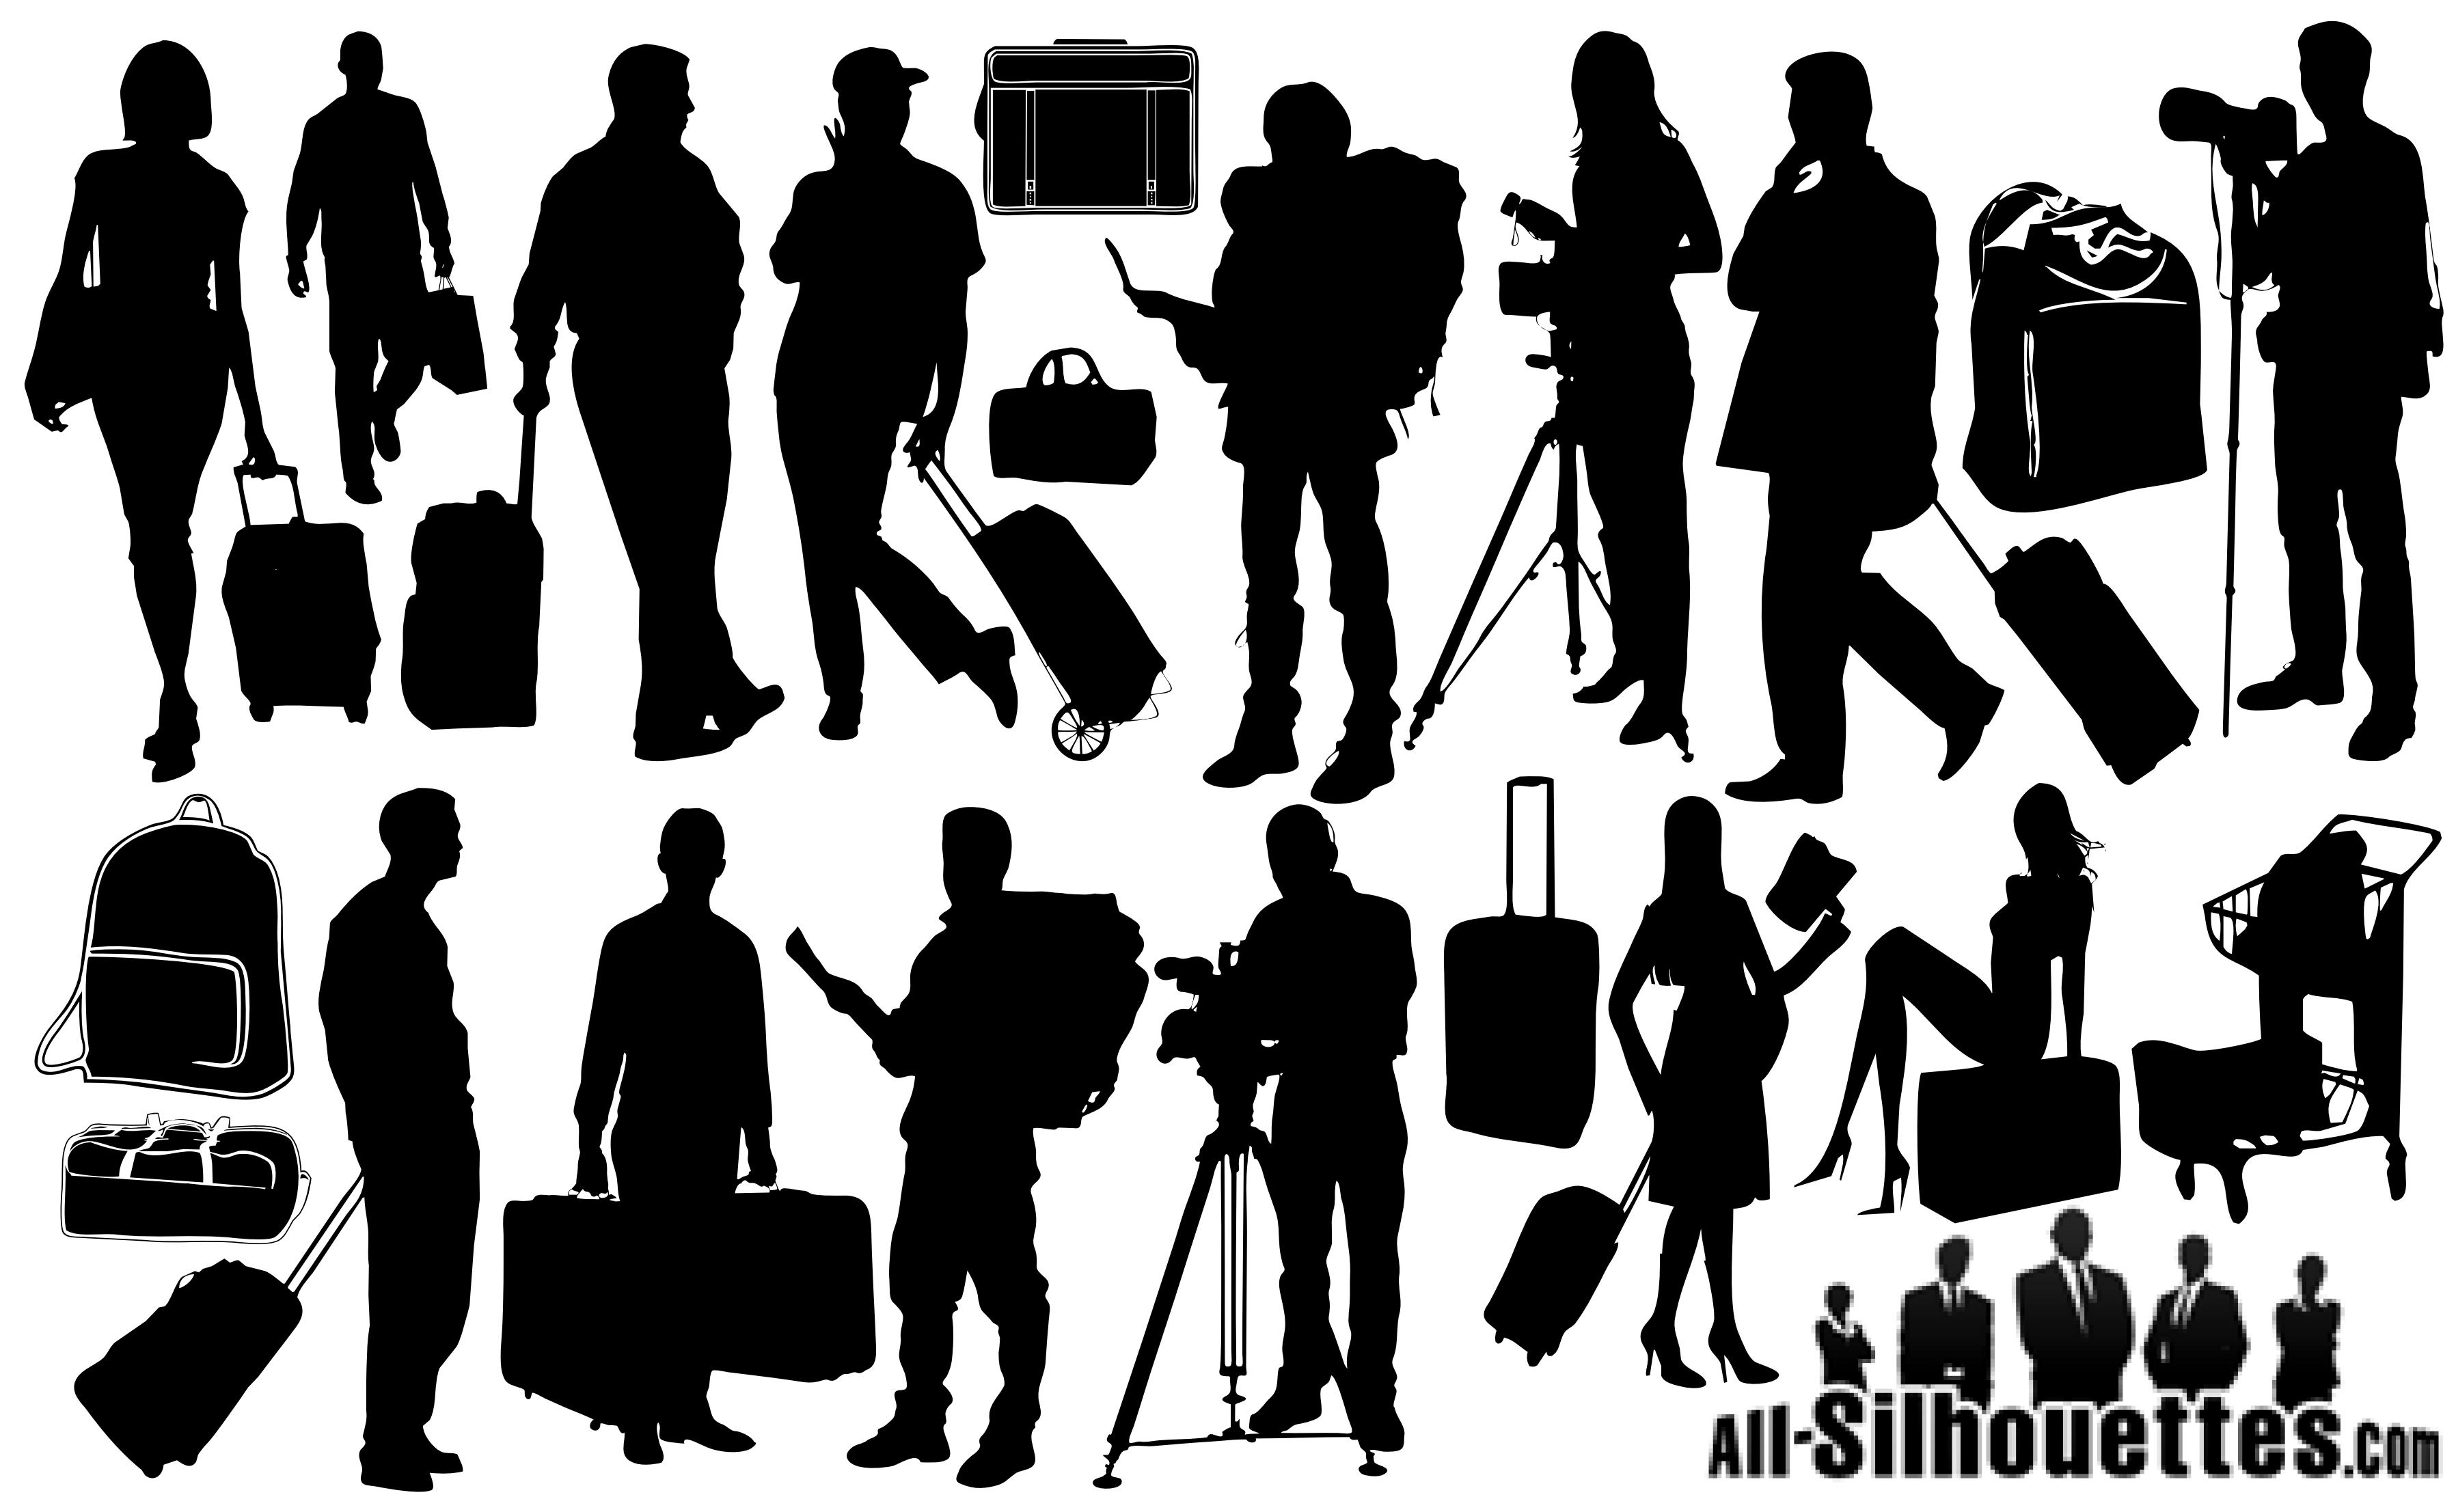 21 Tourists Travelers Silhouettes